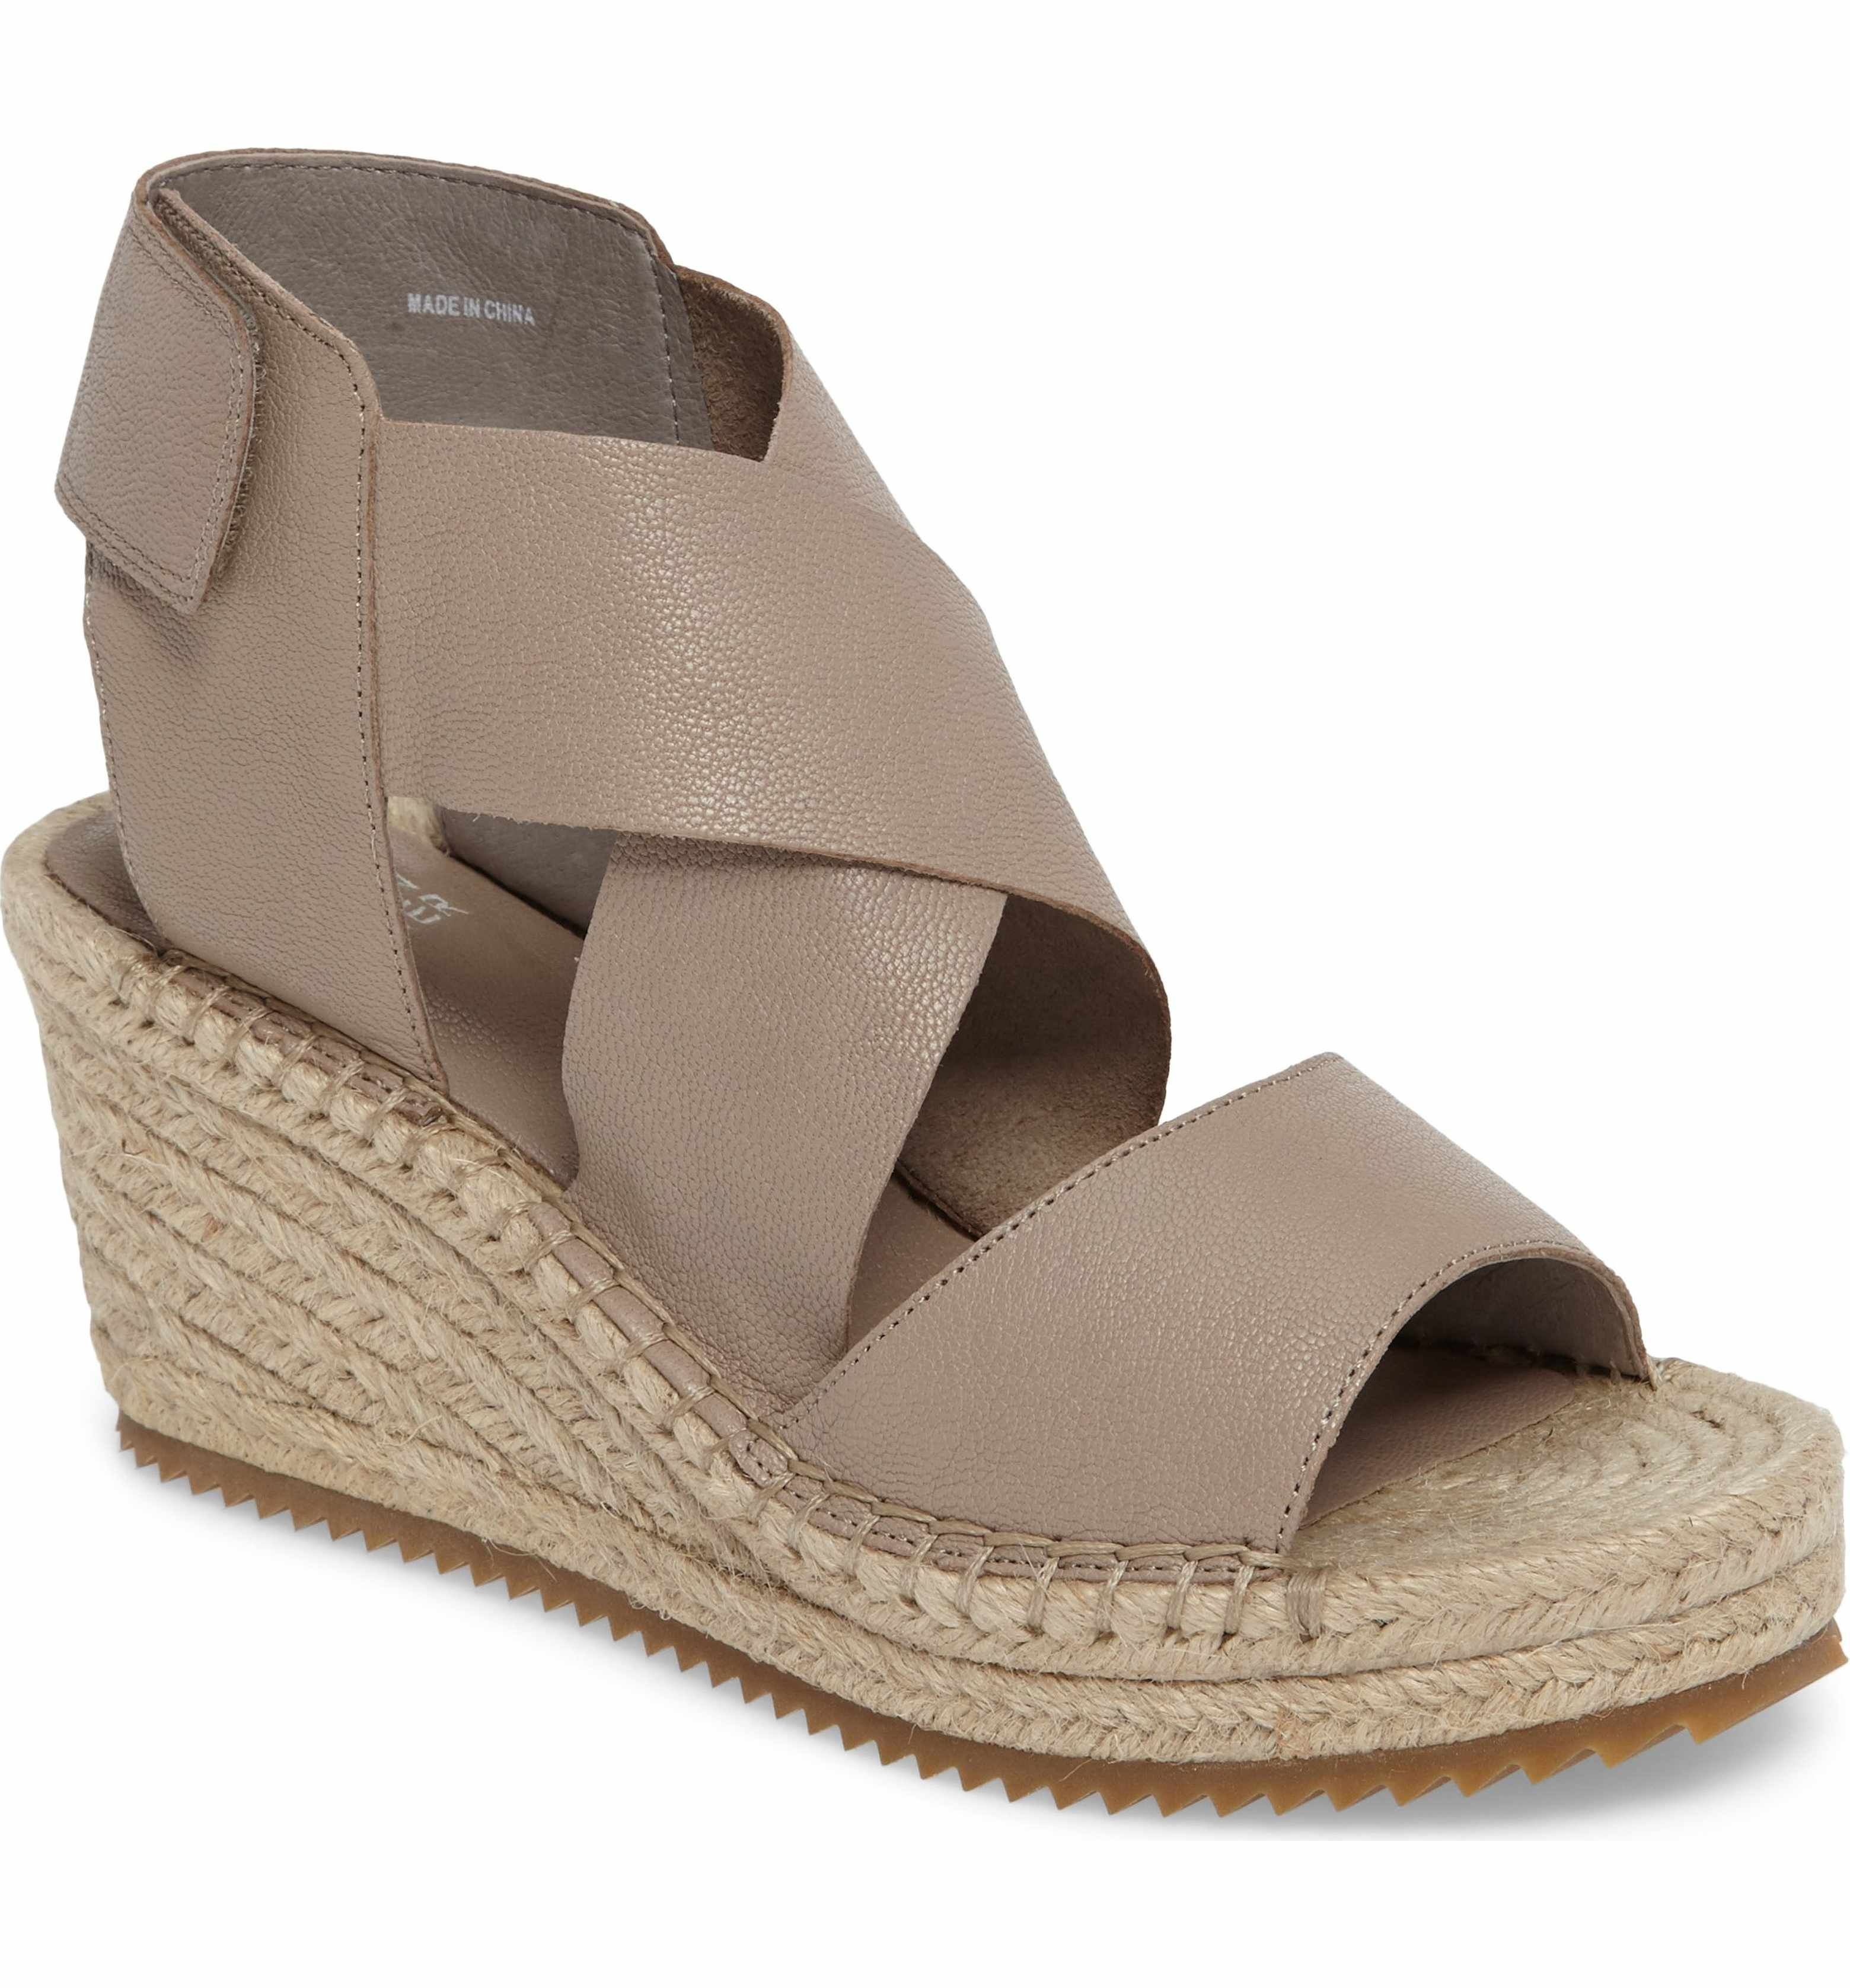 collections of pointe wedge virtual sandals comforter comfort library sandi